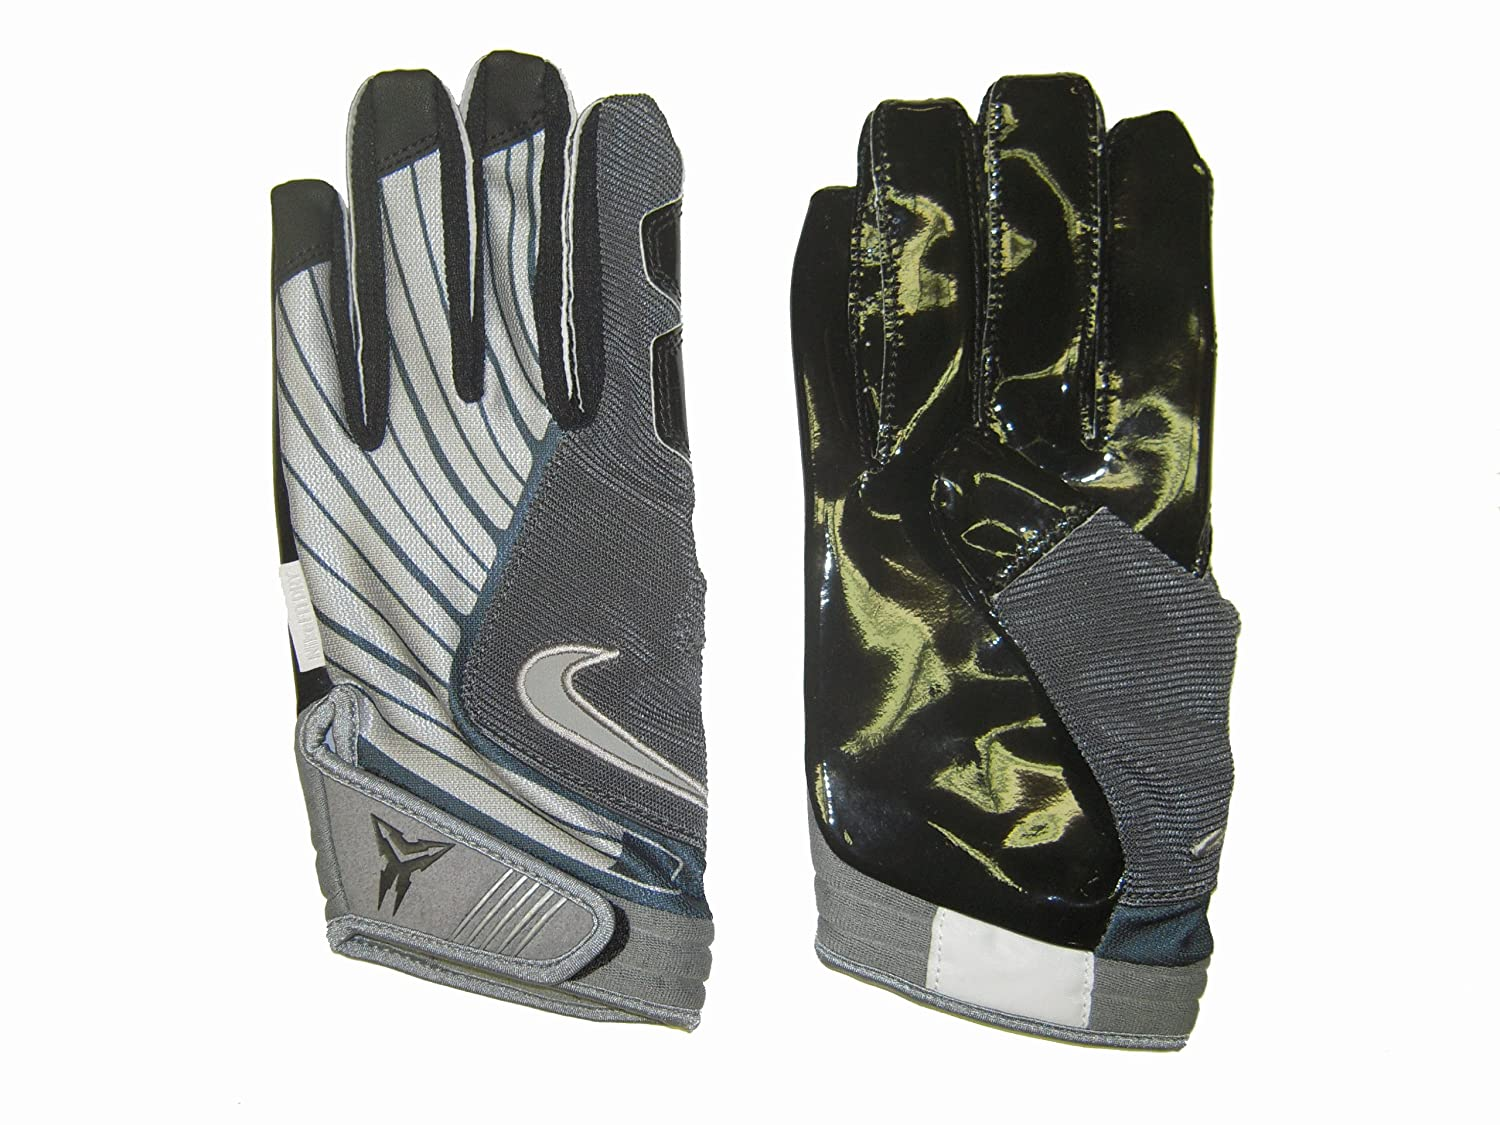 Nike Magnigrip Vapor-College Football Gloves Silicone Palm